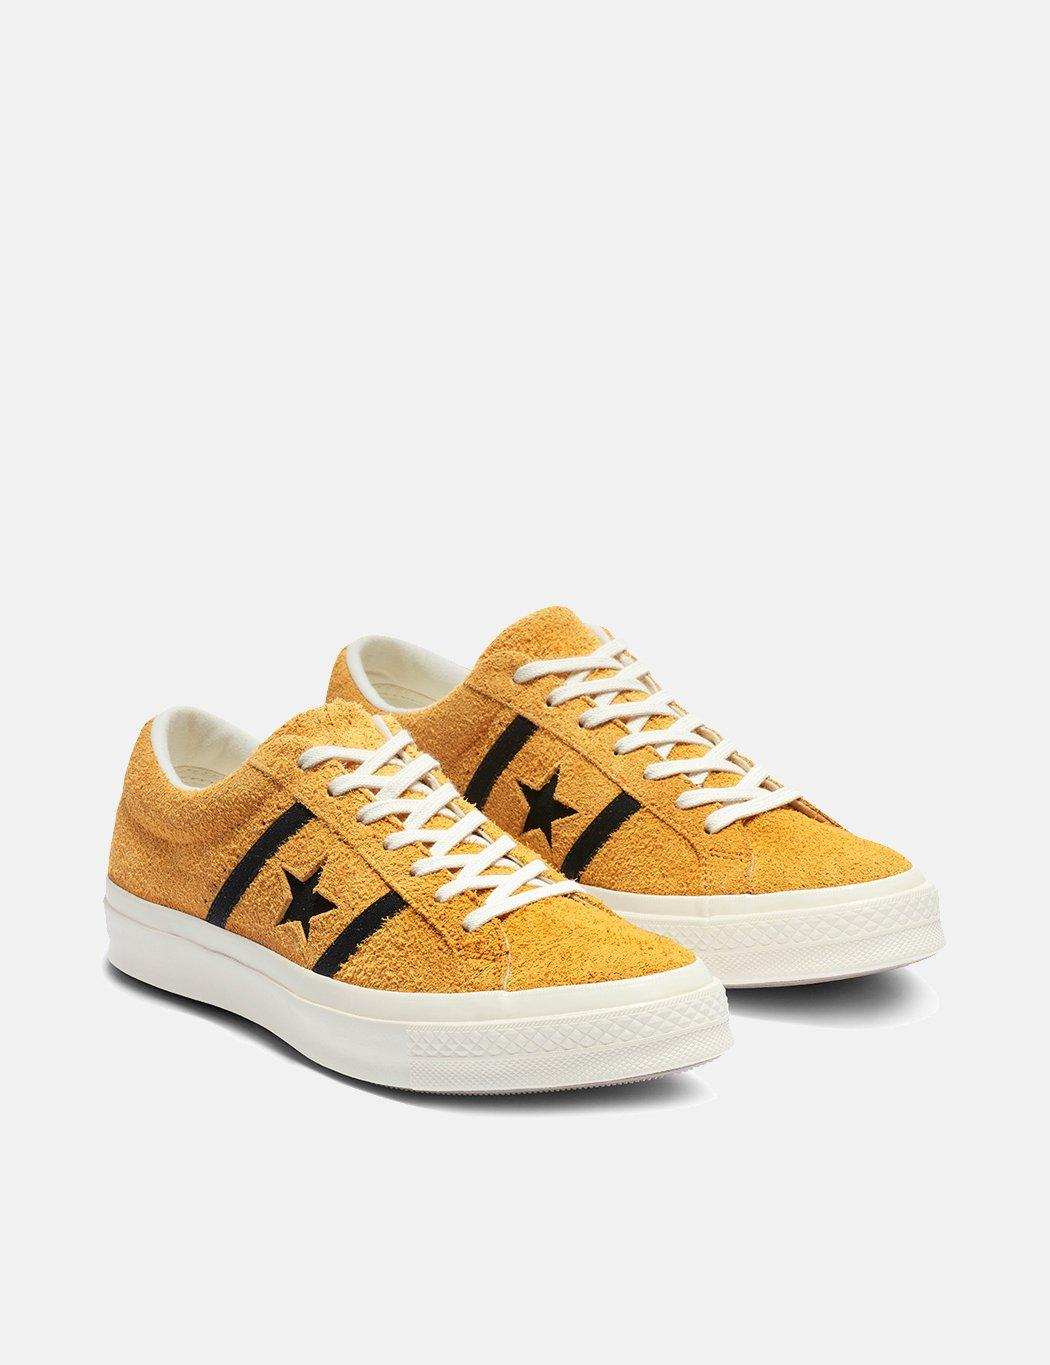 b50eaa49417626 Converse One Star Academy Low Top (163268c) in Orange for Men - Lyst